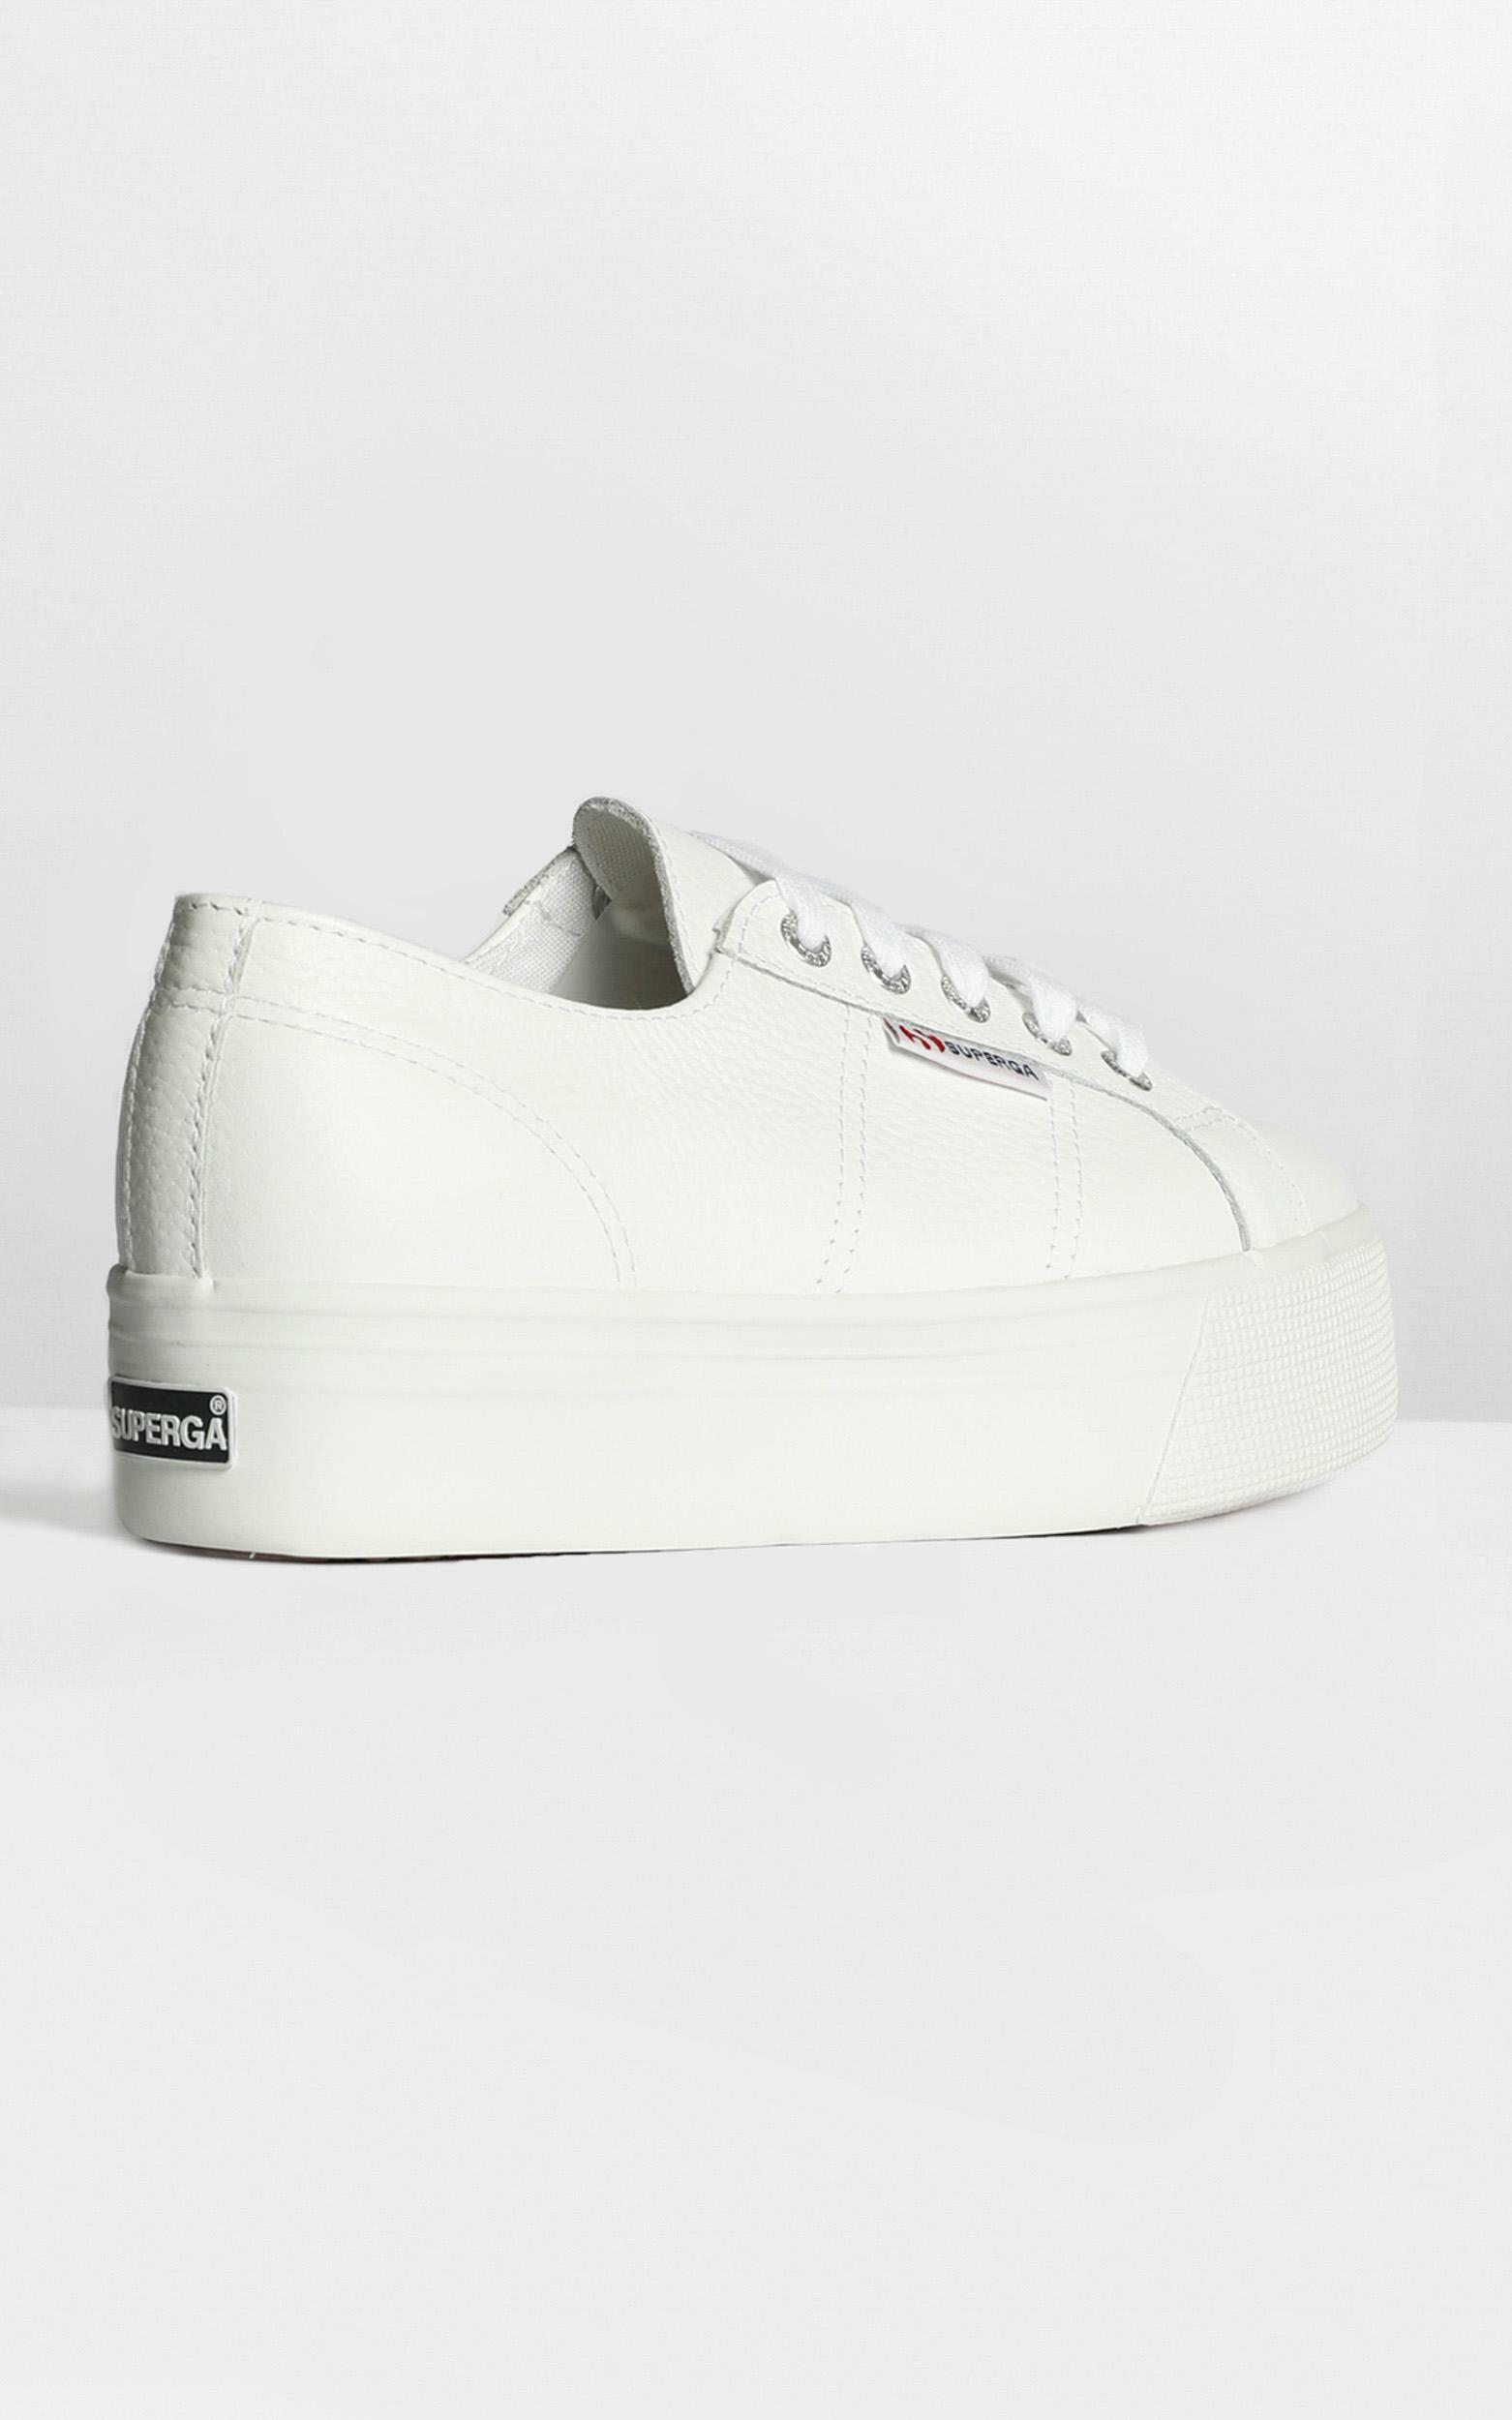 Superga - 2790 FGLW Platform Sneakers in white leather - 9, WHT2, hi-res image number null